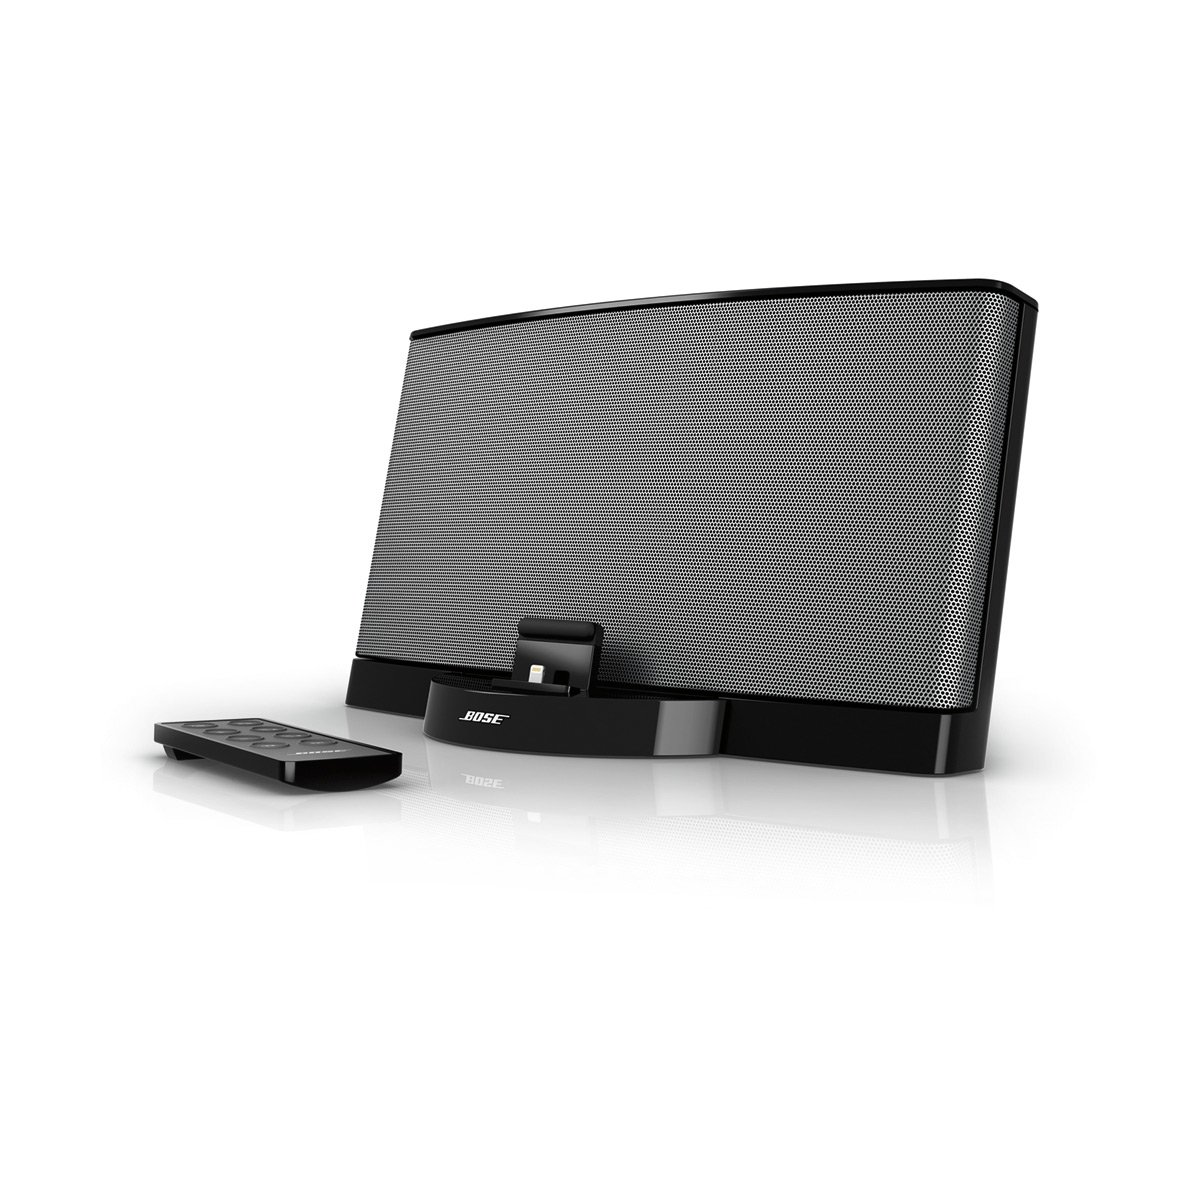 bose digital radio. bose ® sounddock series iii digital music system - black: amazon.co.uk: hi-fi \u0026 speakers radio